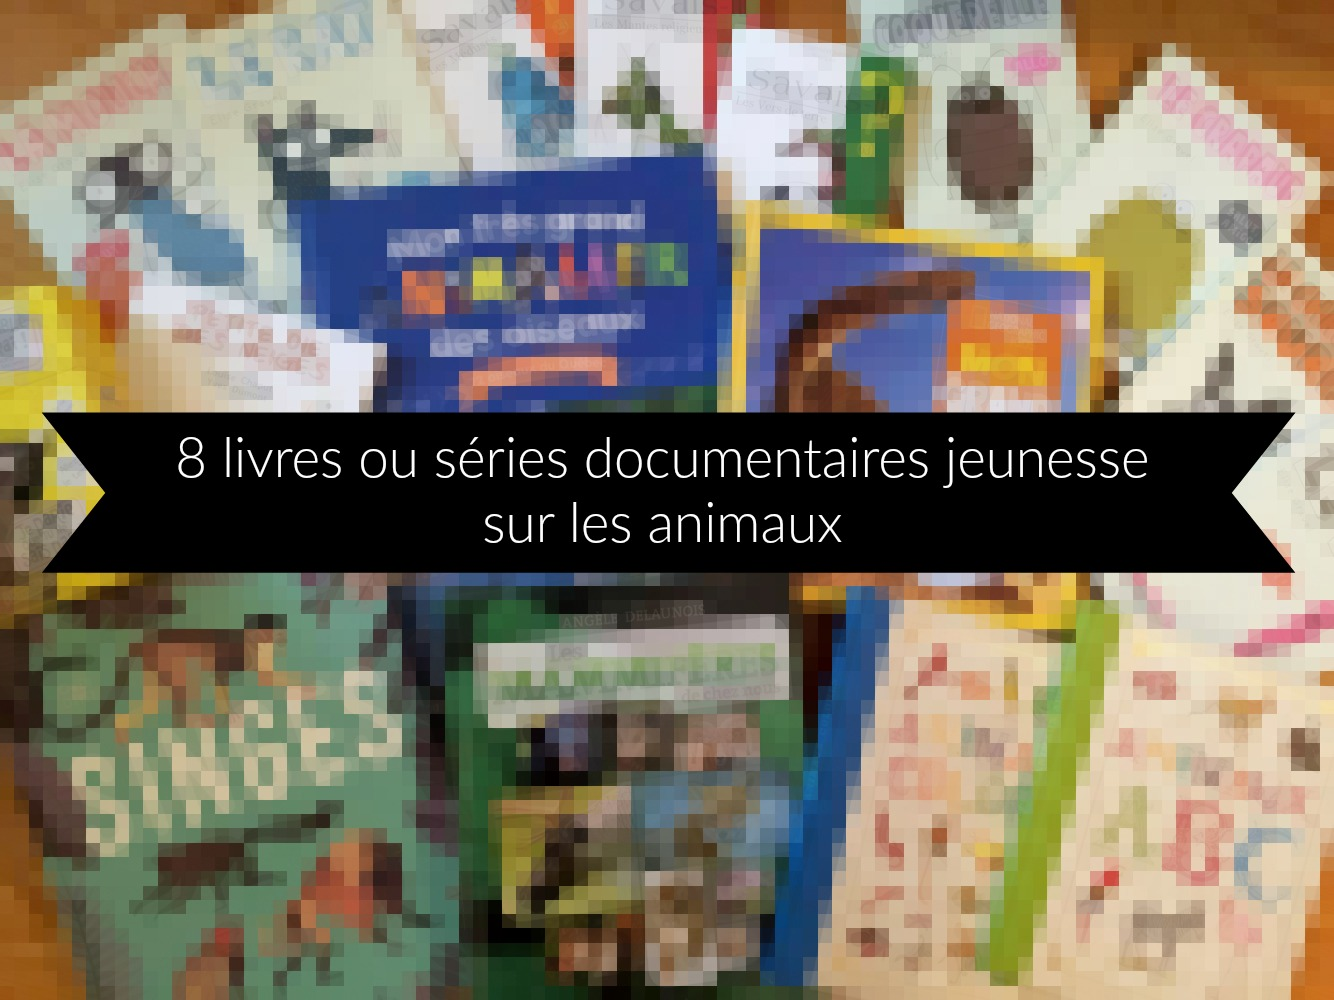 8 livres ou s ries documentaires jeunesse sur les animaux. Black Bedroom Furniture Sets. Home Design Ideas